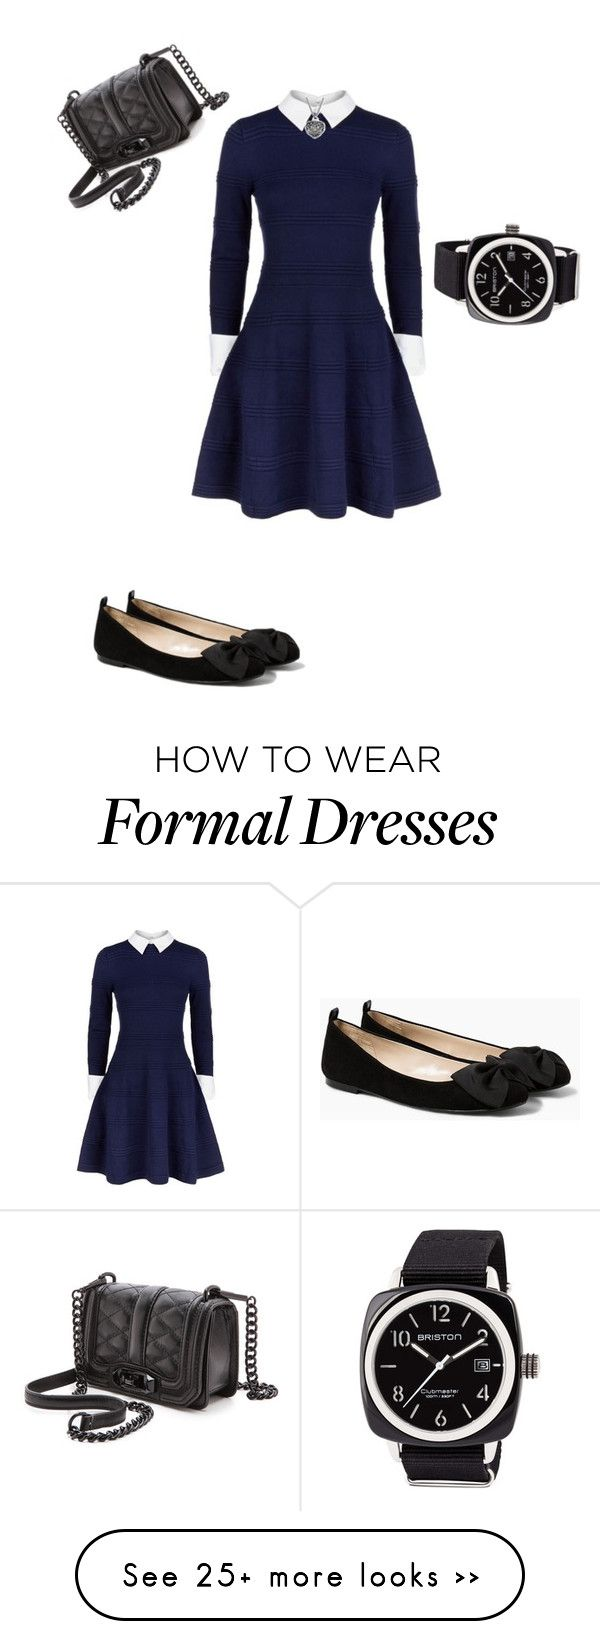 """nerd outfit : formal"" by cpfandomlover on Polyvore featuring Alice + Olivia, MANGO, Rebecca Minkoff and Briston"